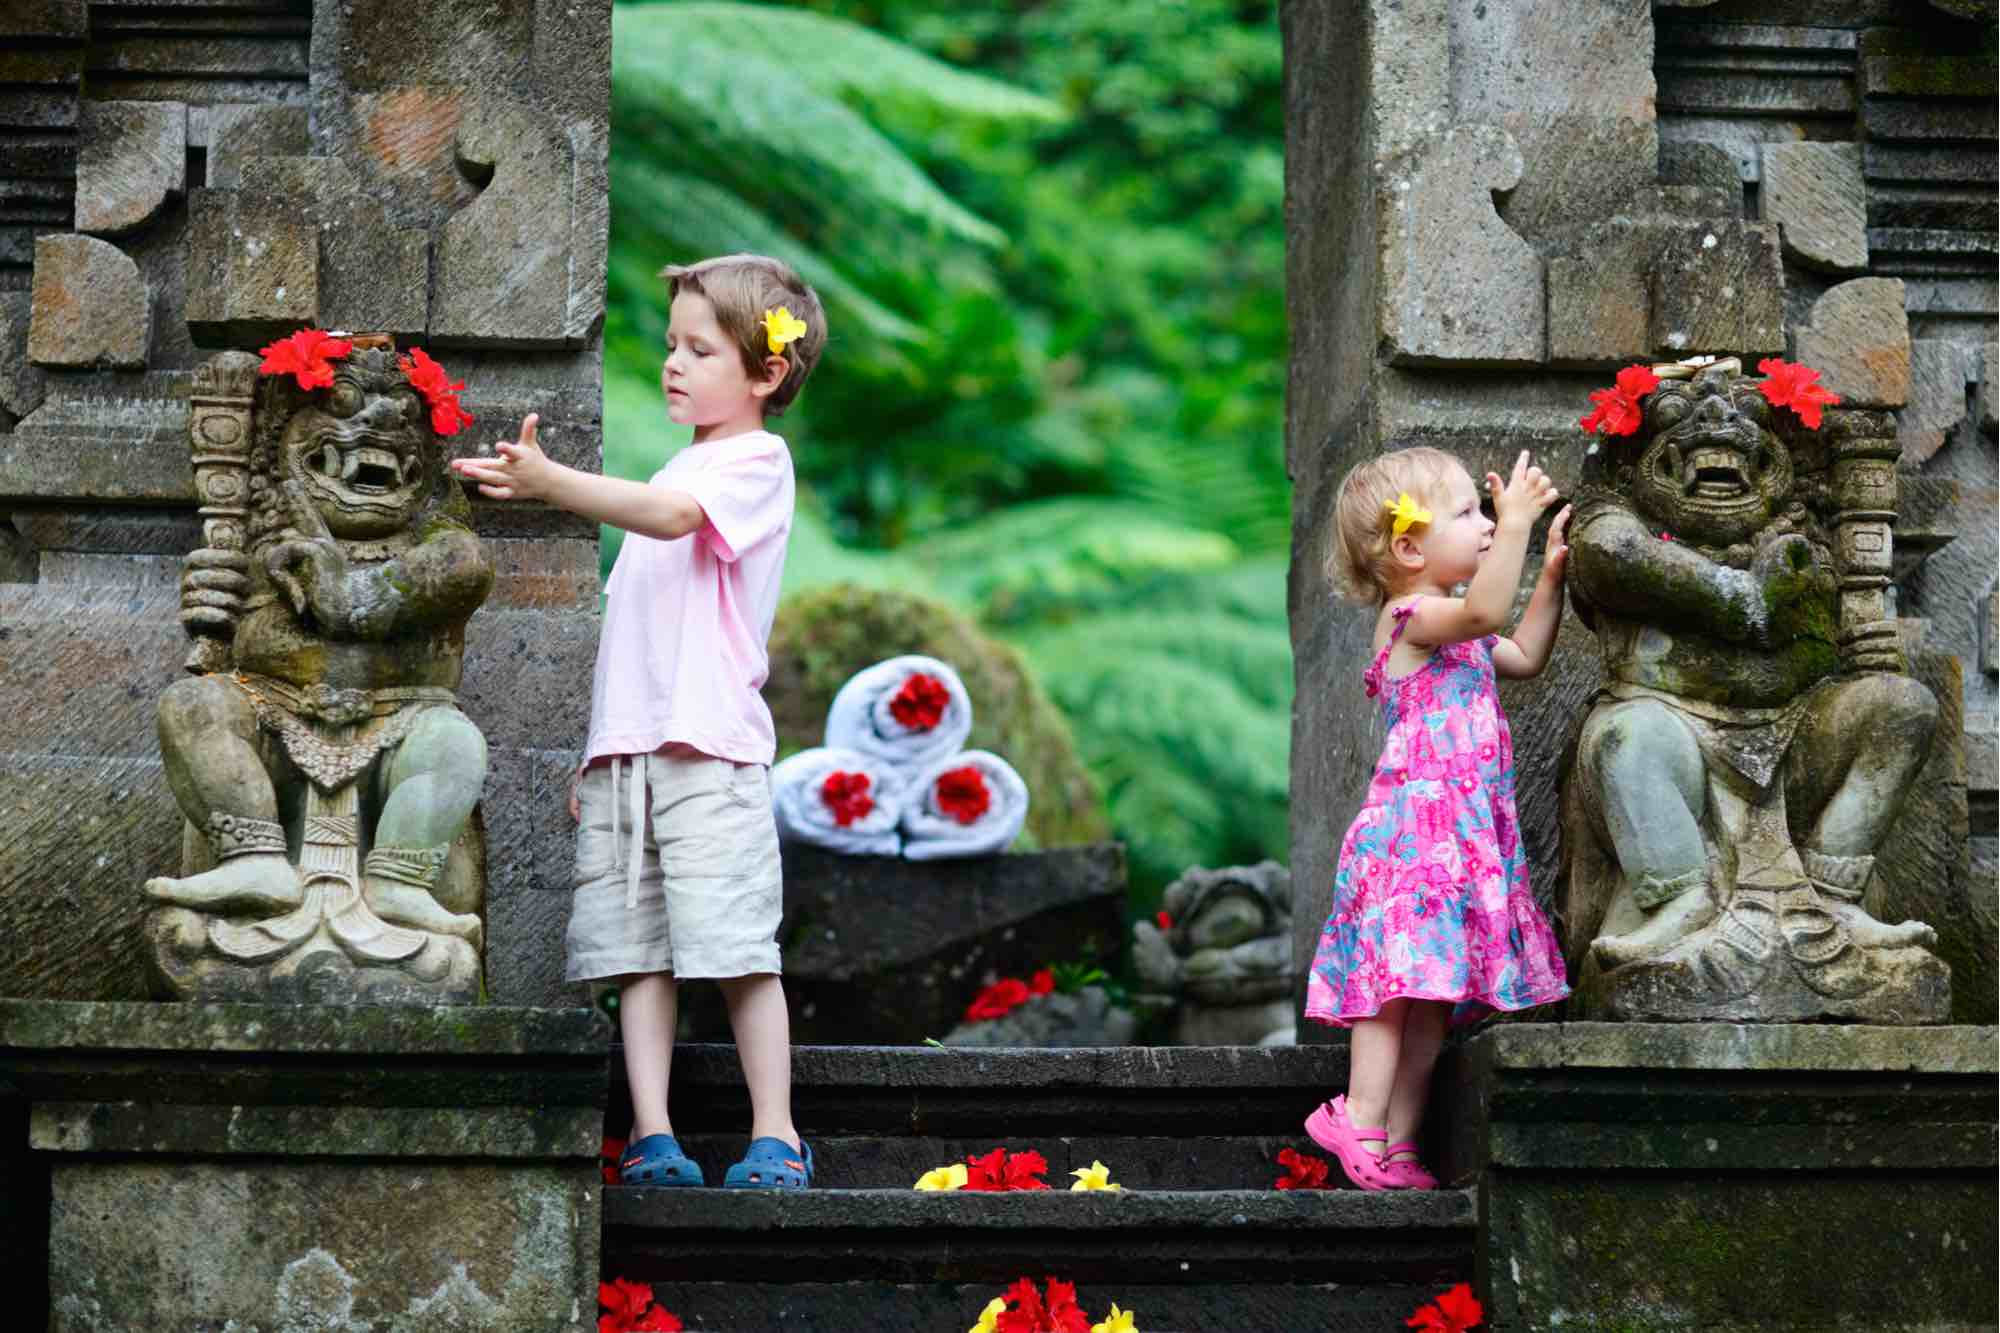 Where to Stay in Bali with Kids – Which Area is the Best?